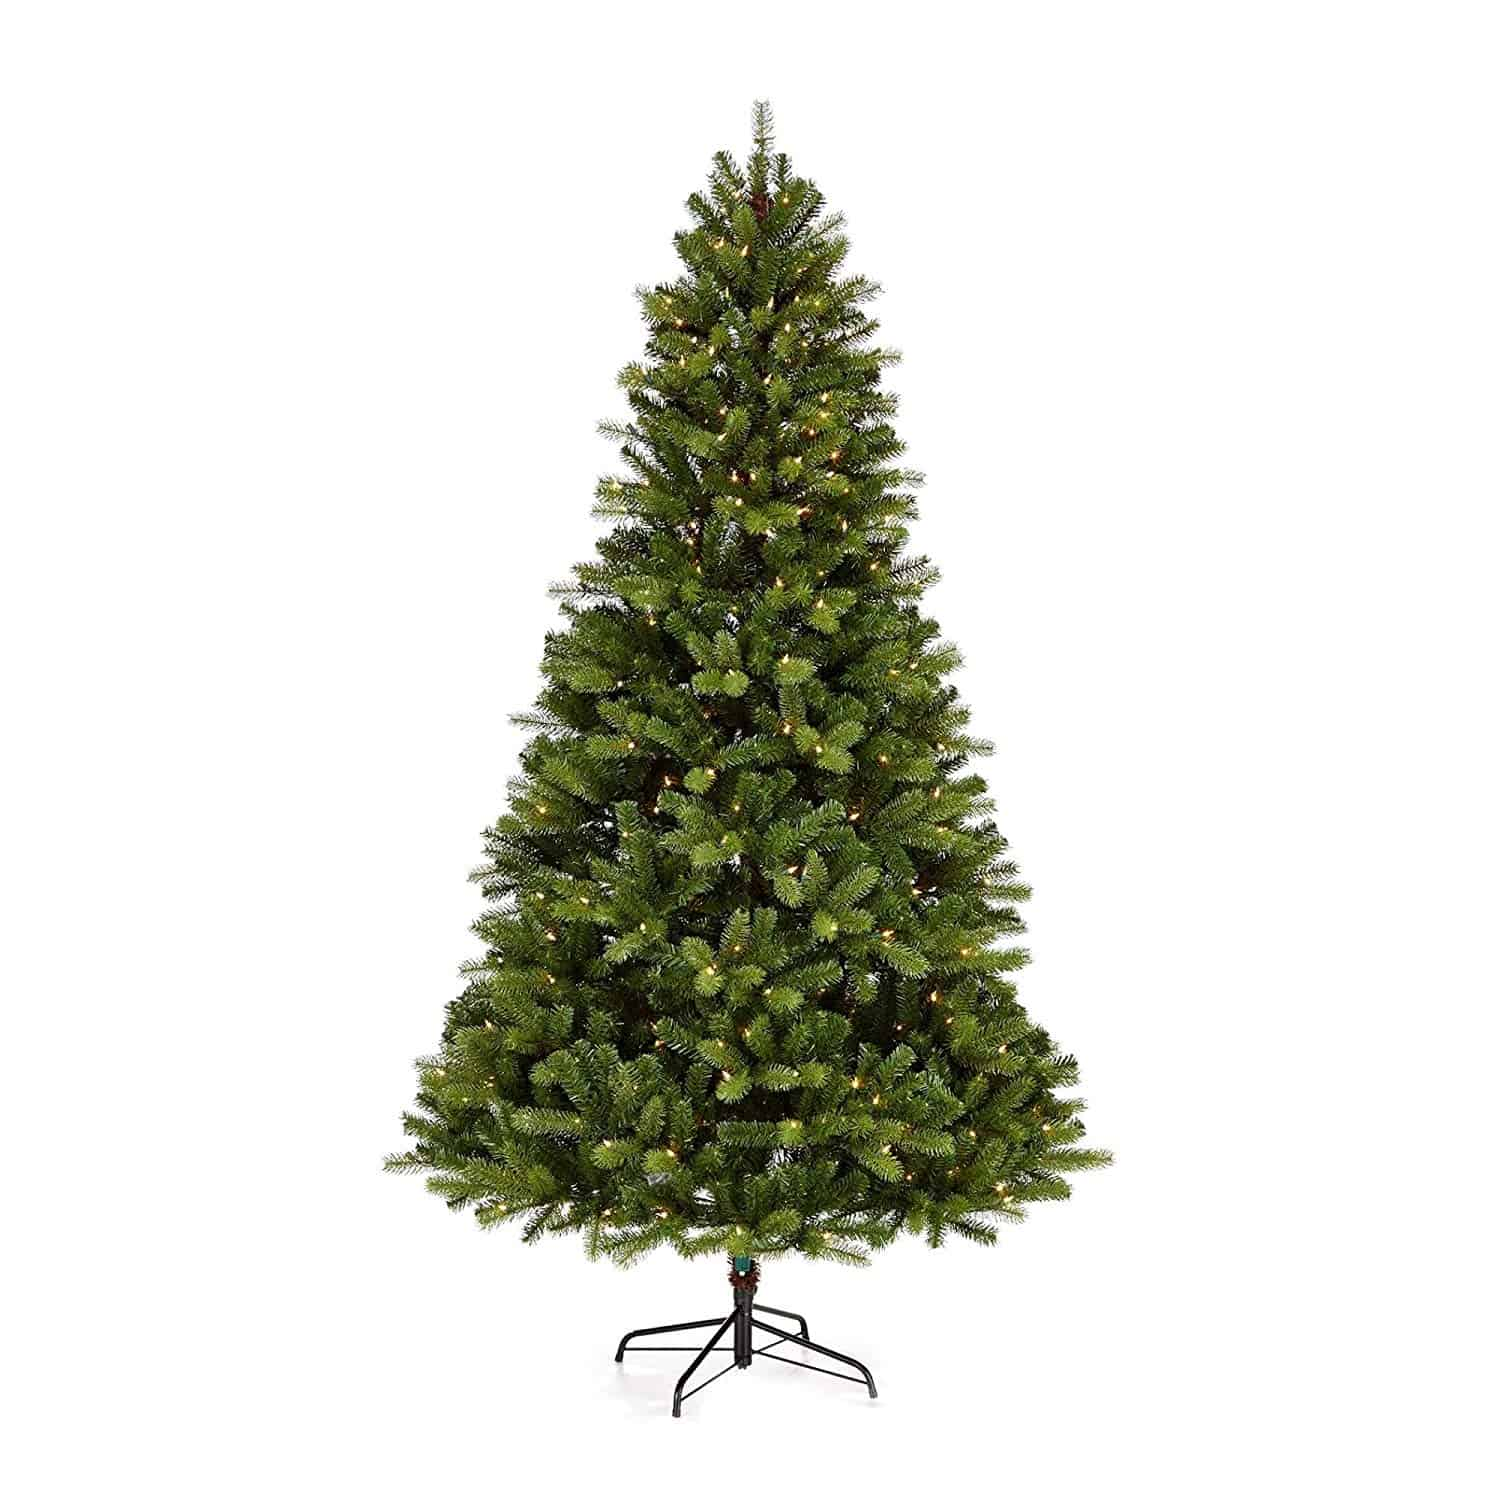 Save Big On NOMA Christmas Trees - Amazon